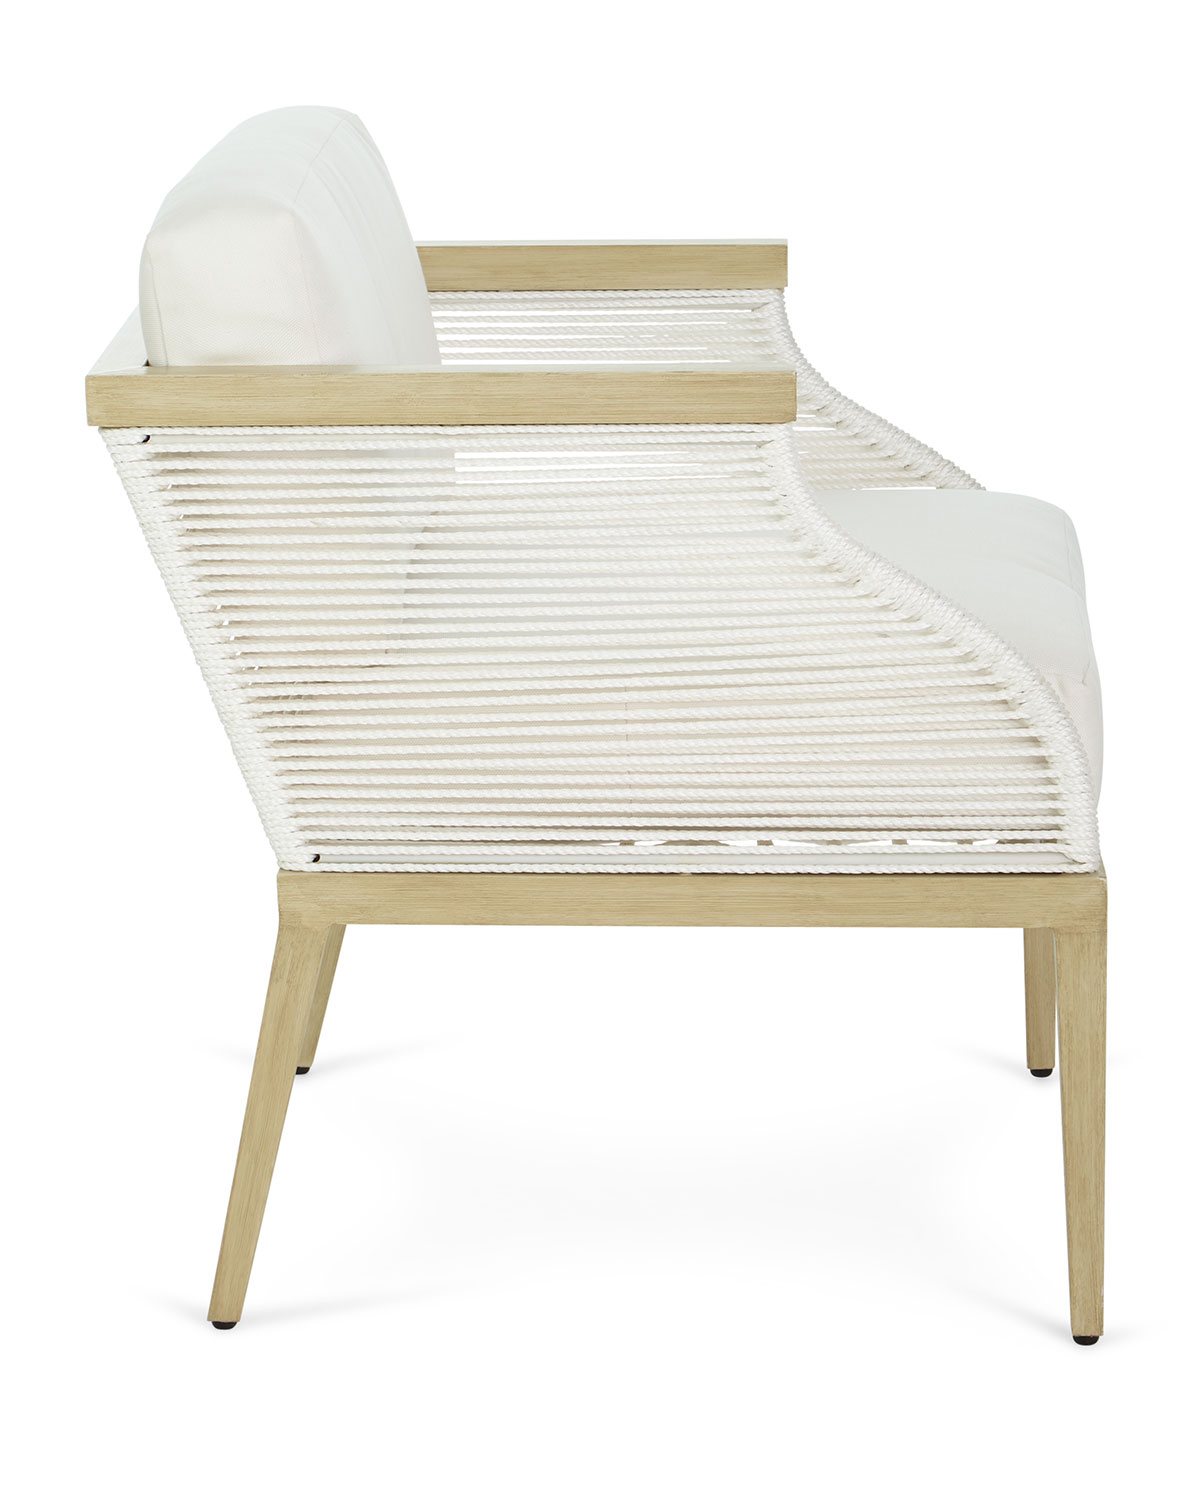 Sausalito Outdoor Lounge Chair